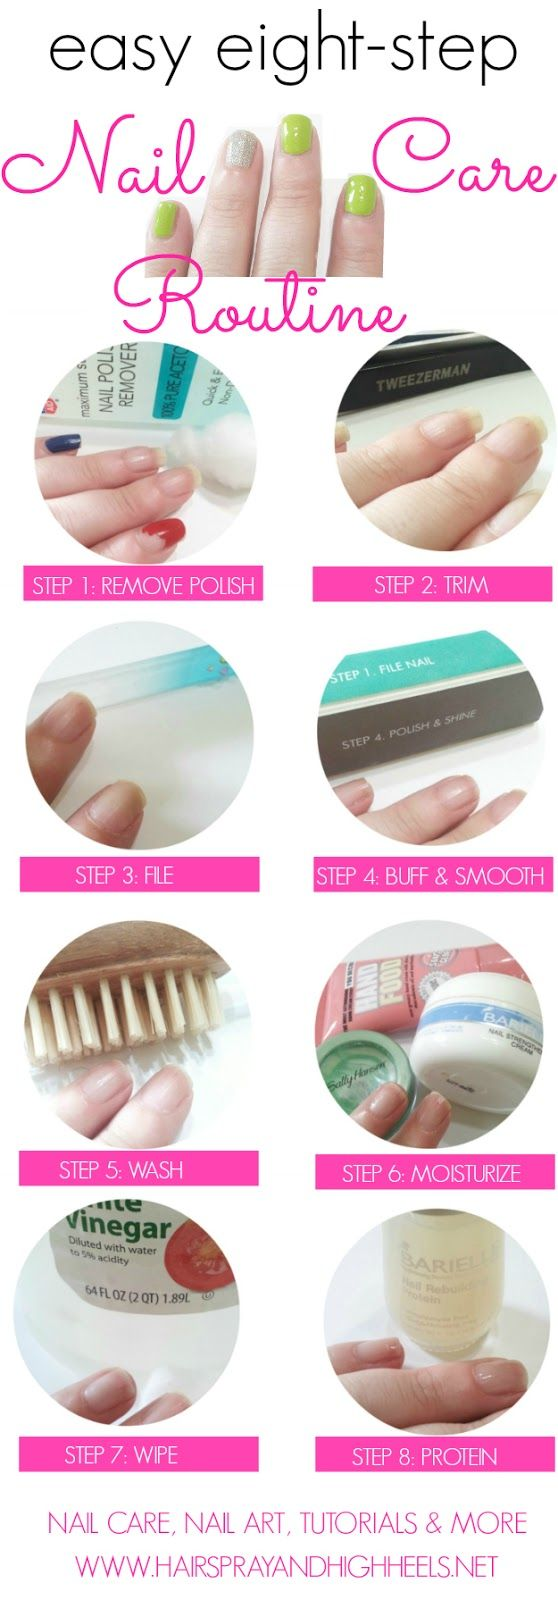 Nail Care Routine | Pinterest | Nail care, Routine and Salons